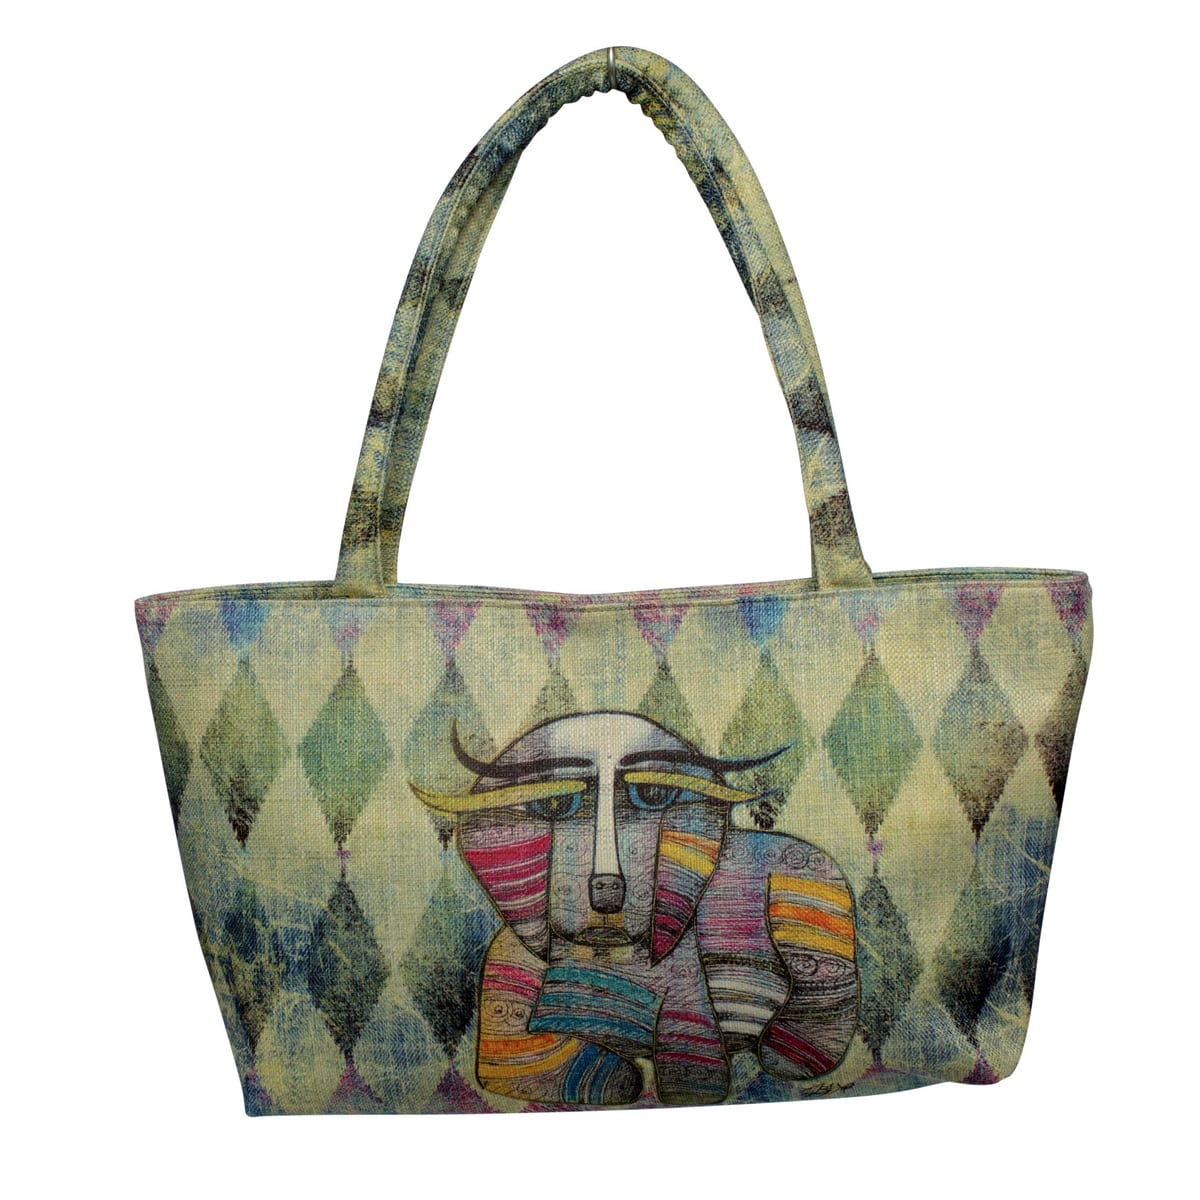 Totes for Dog Lovers - Square Handbag with Dog Art by Albena